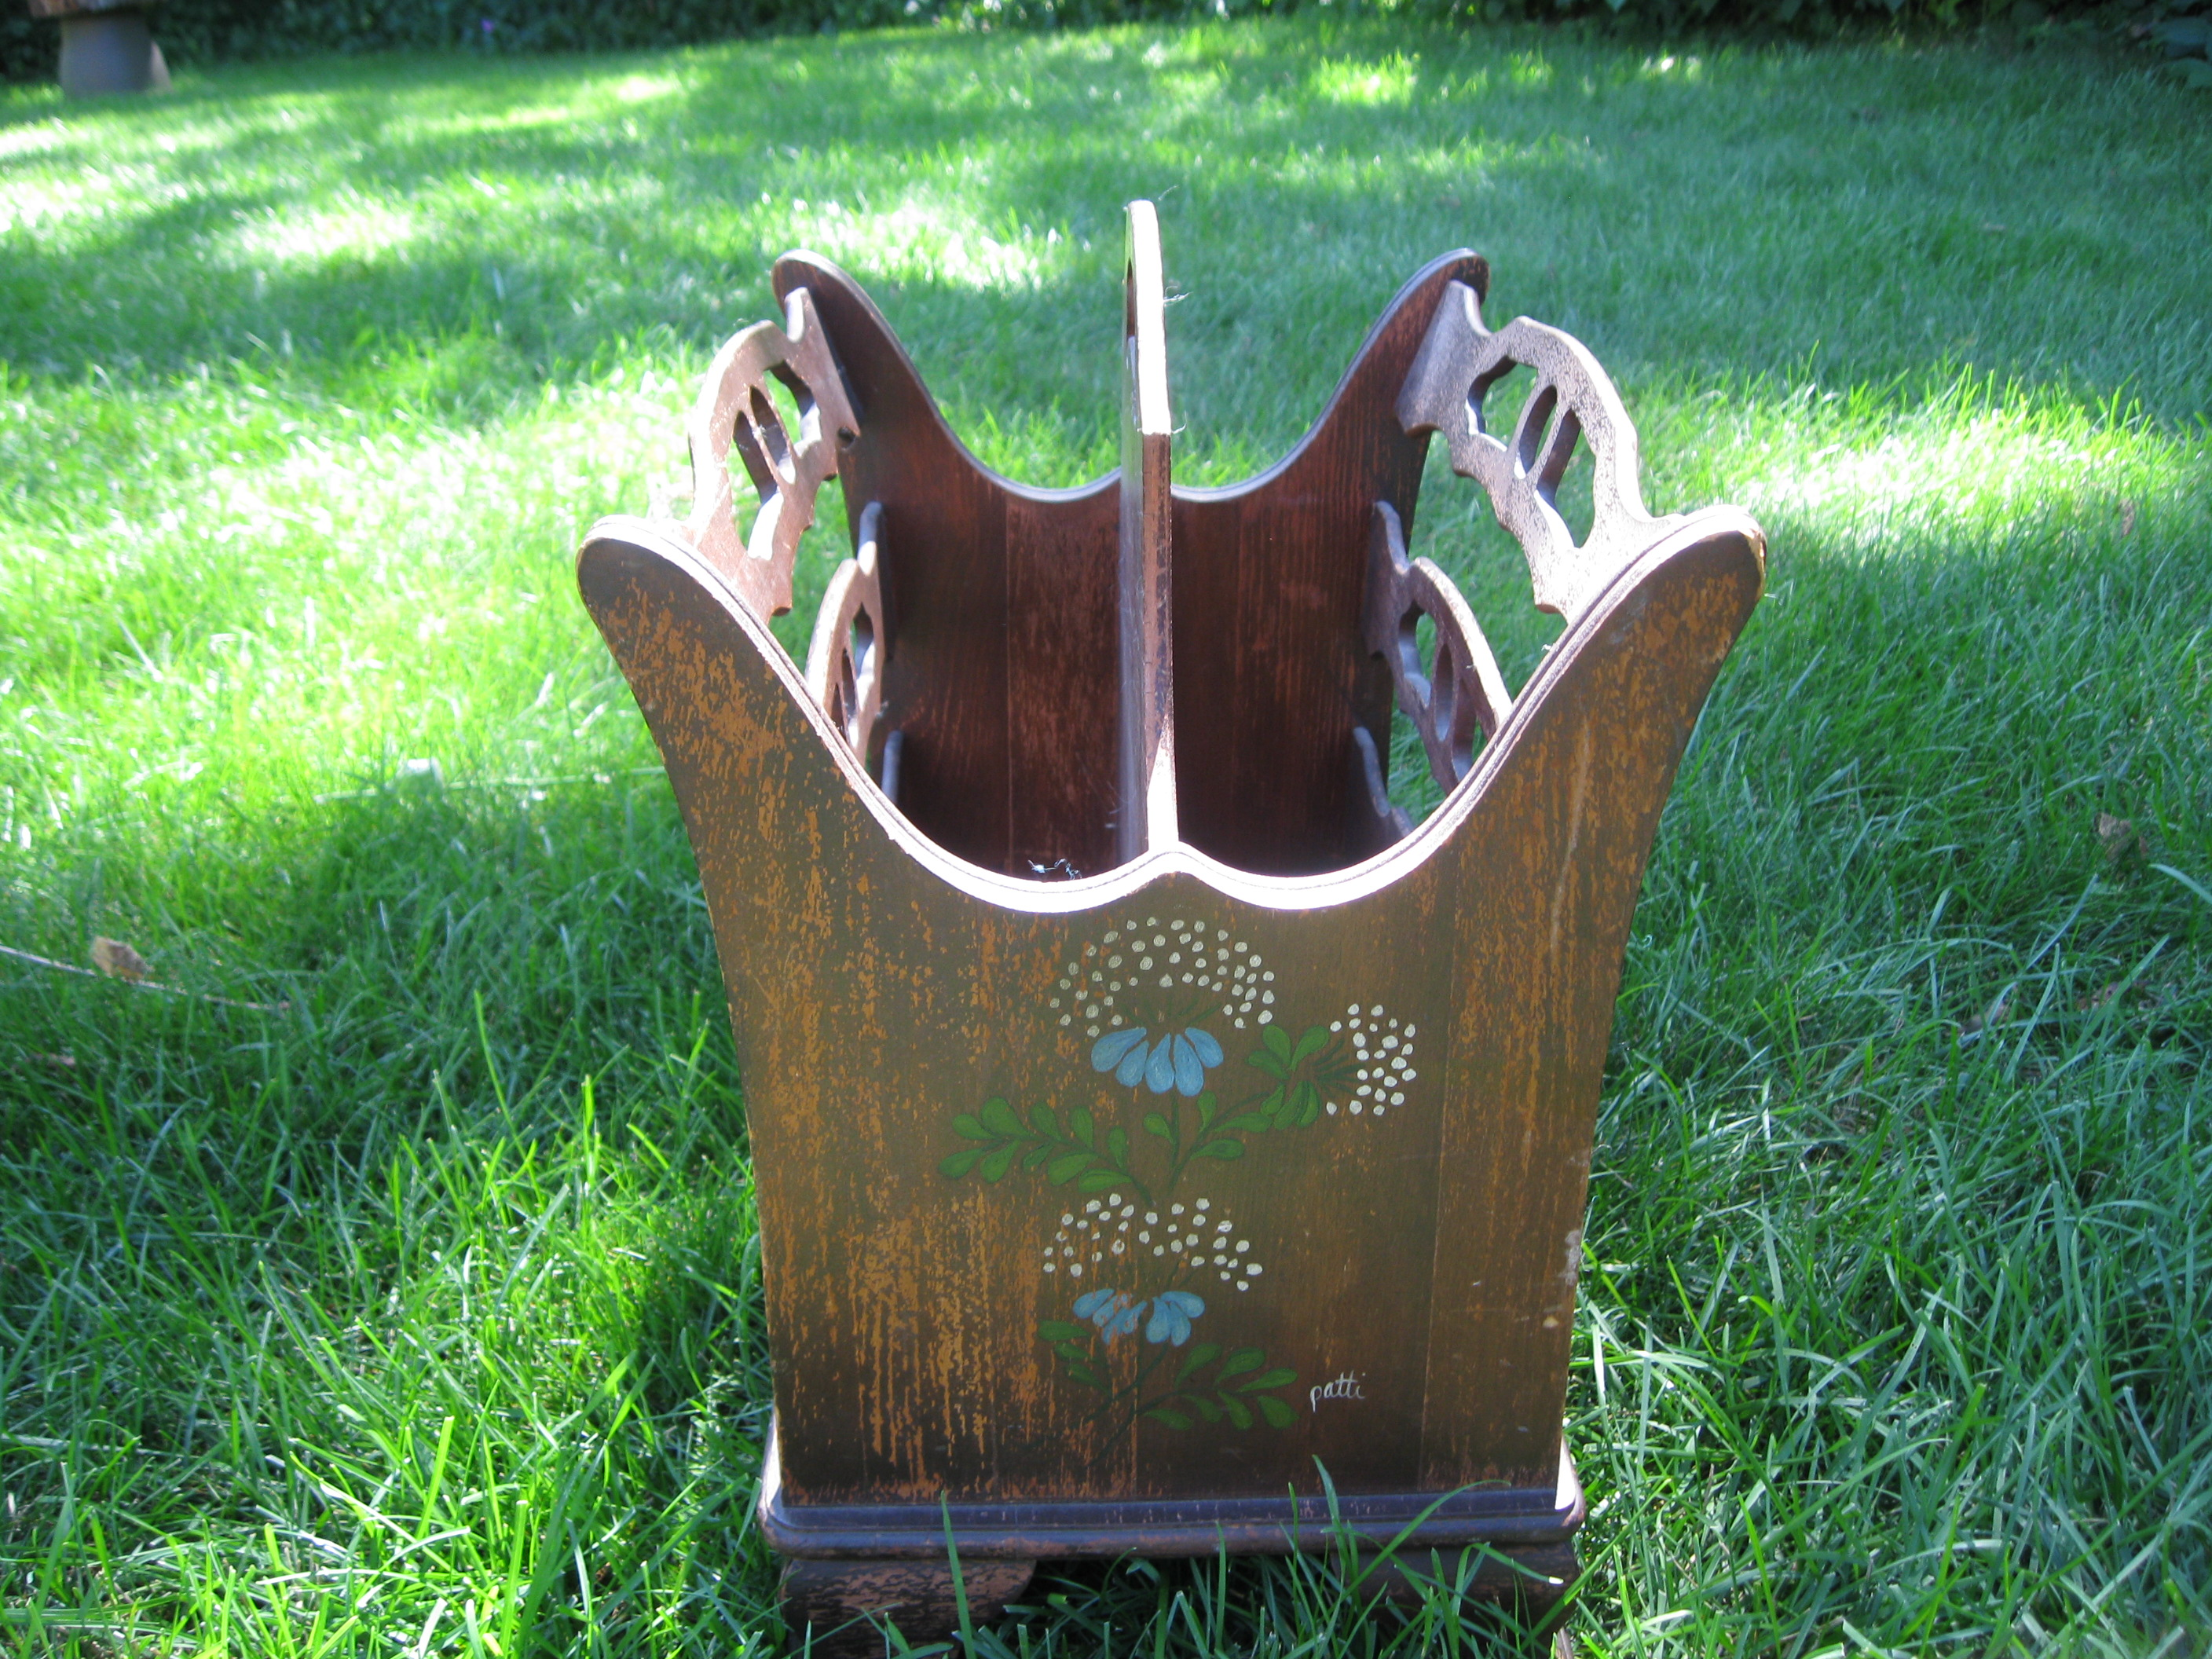 The old magazine rack was a family piece, but worn and water stained